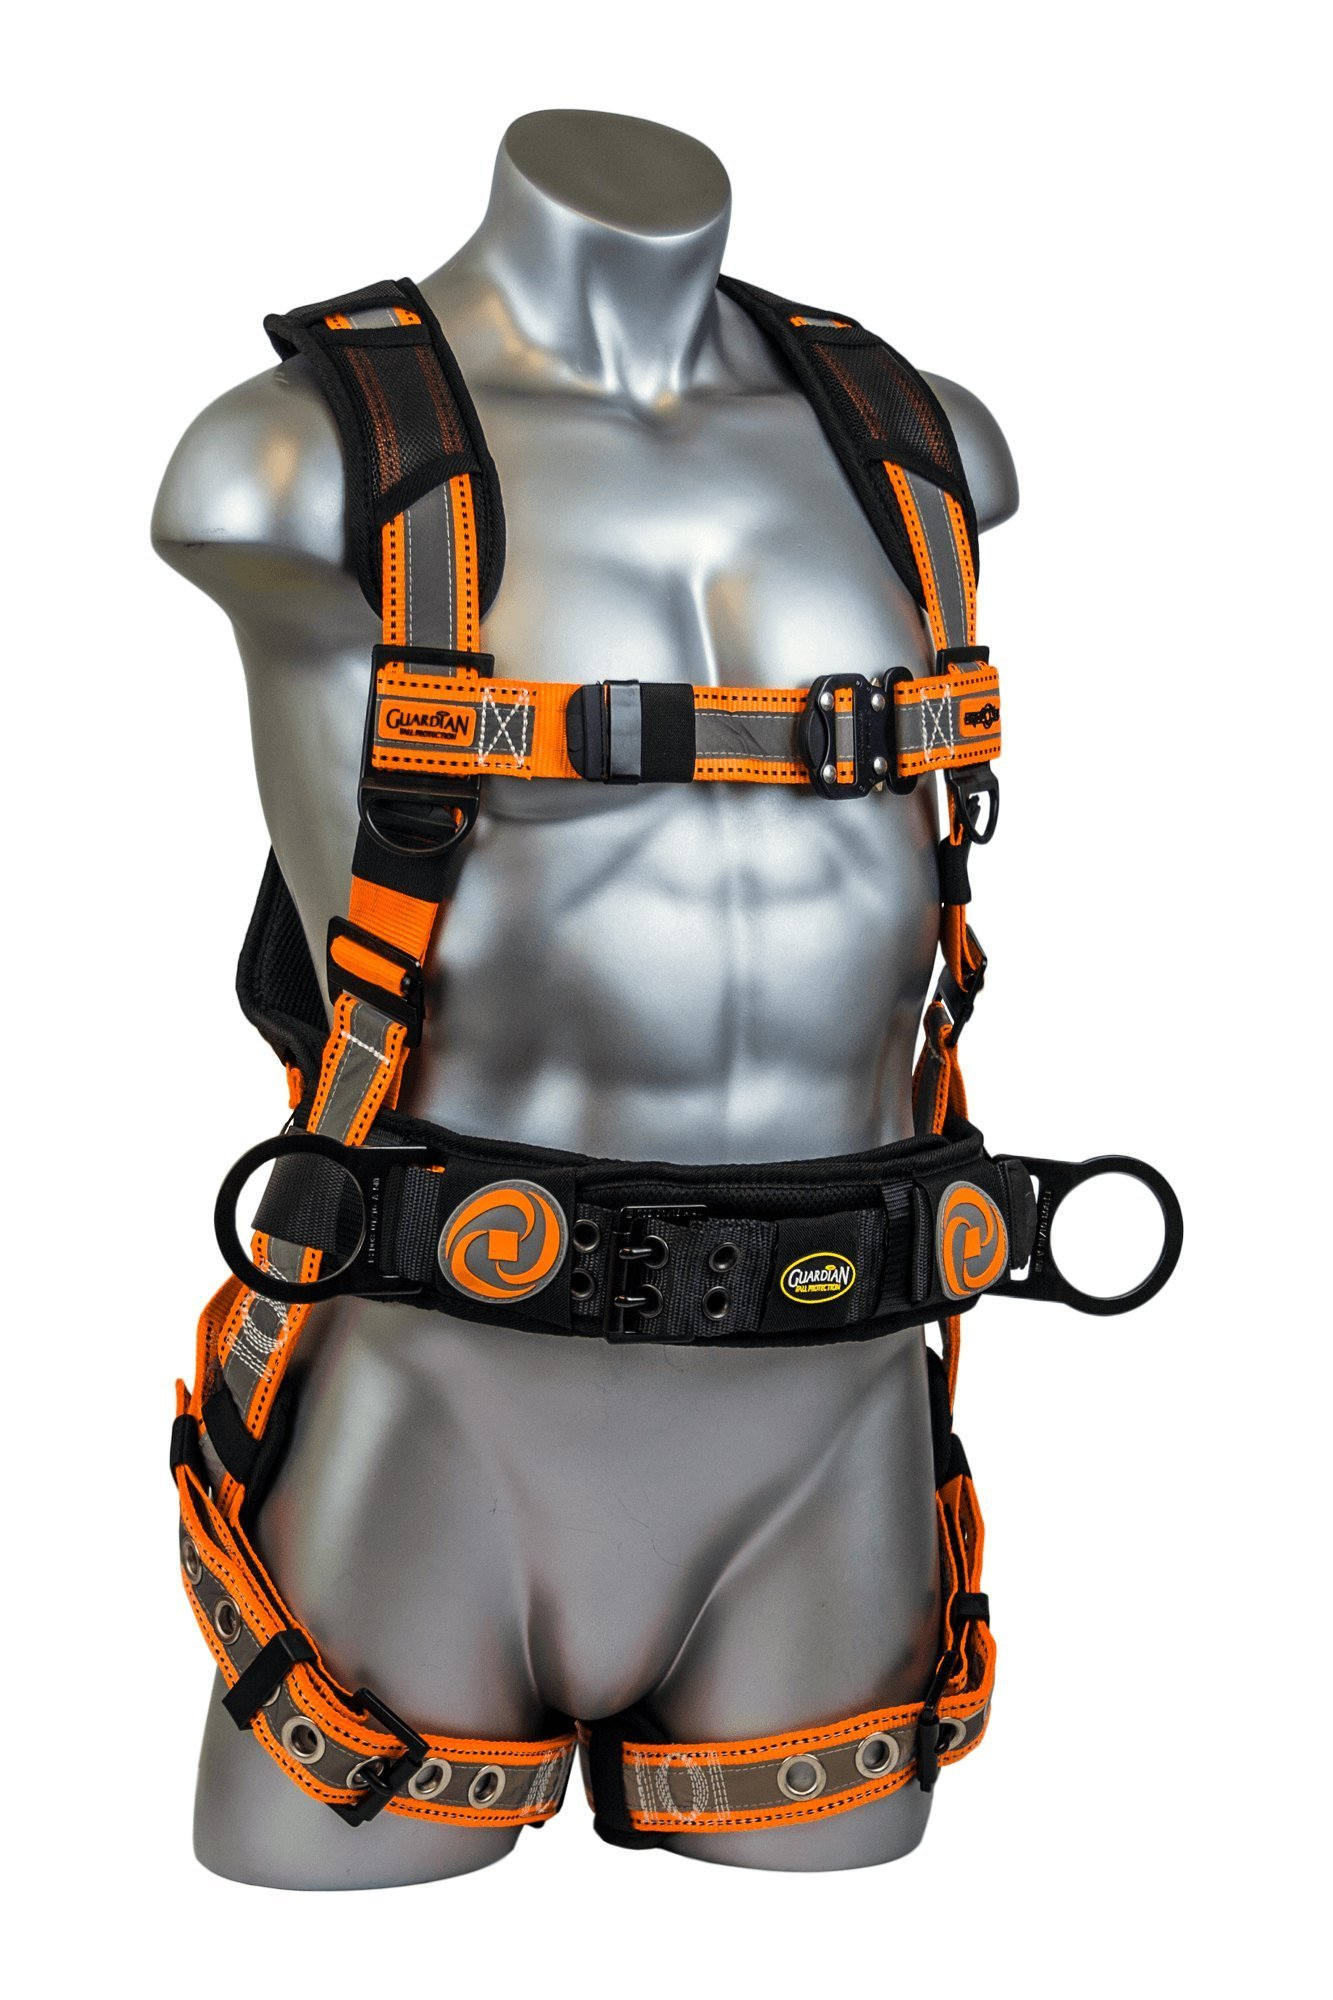 Guardian Fall Protection 21060 Cyclone Construction Harness Black/Orange, sewn-on Silver Reflective Webbing, QC Chest, TB Waist, TB Legs, Size S